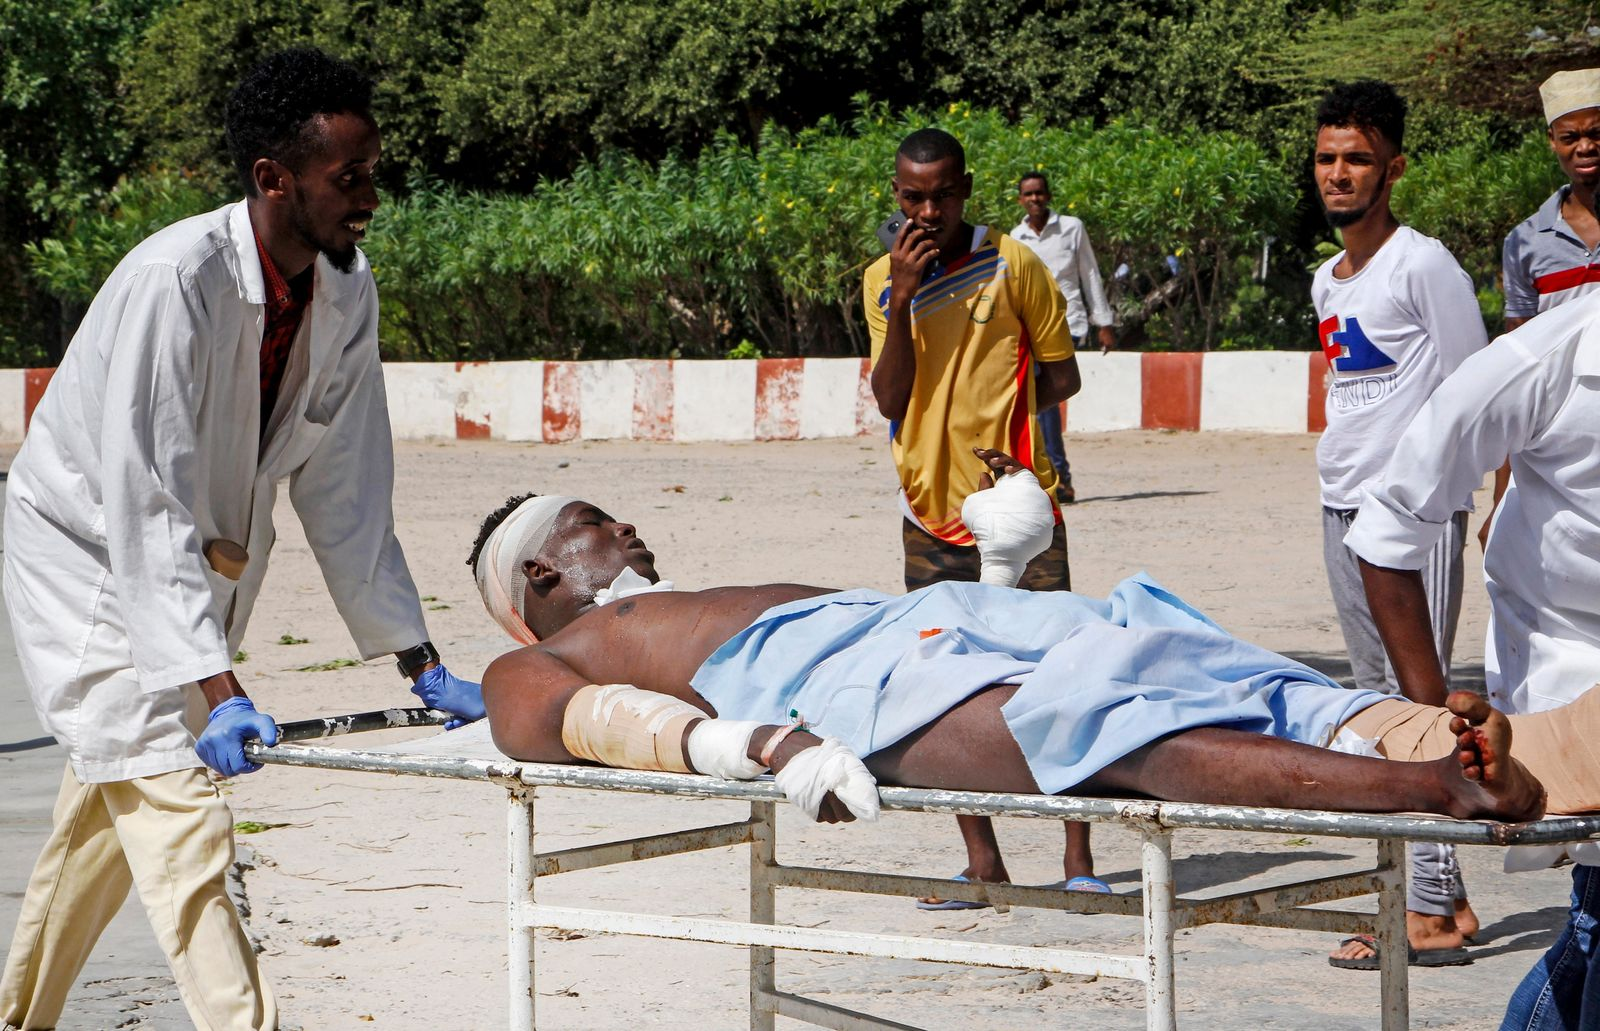 Medical workers help a man who was wounded in a bomb attack, at a hospital in the capital Mogadishu, Somalia Saturday, June 15, 2019. (AP Photo/Farah Abdi Warsameh)